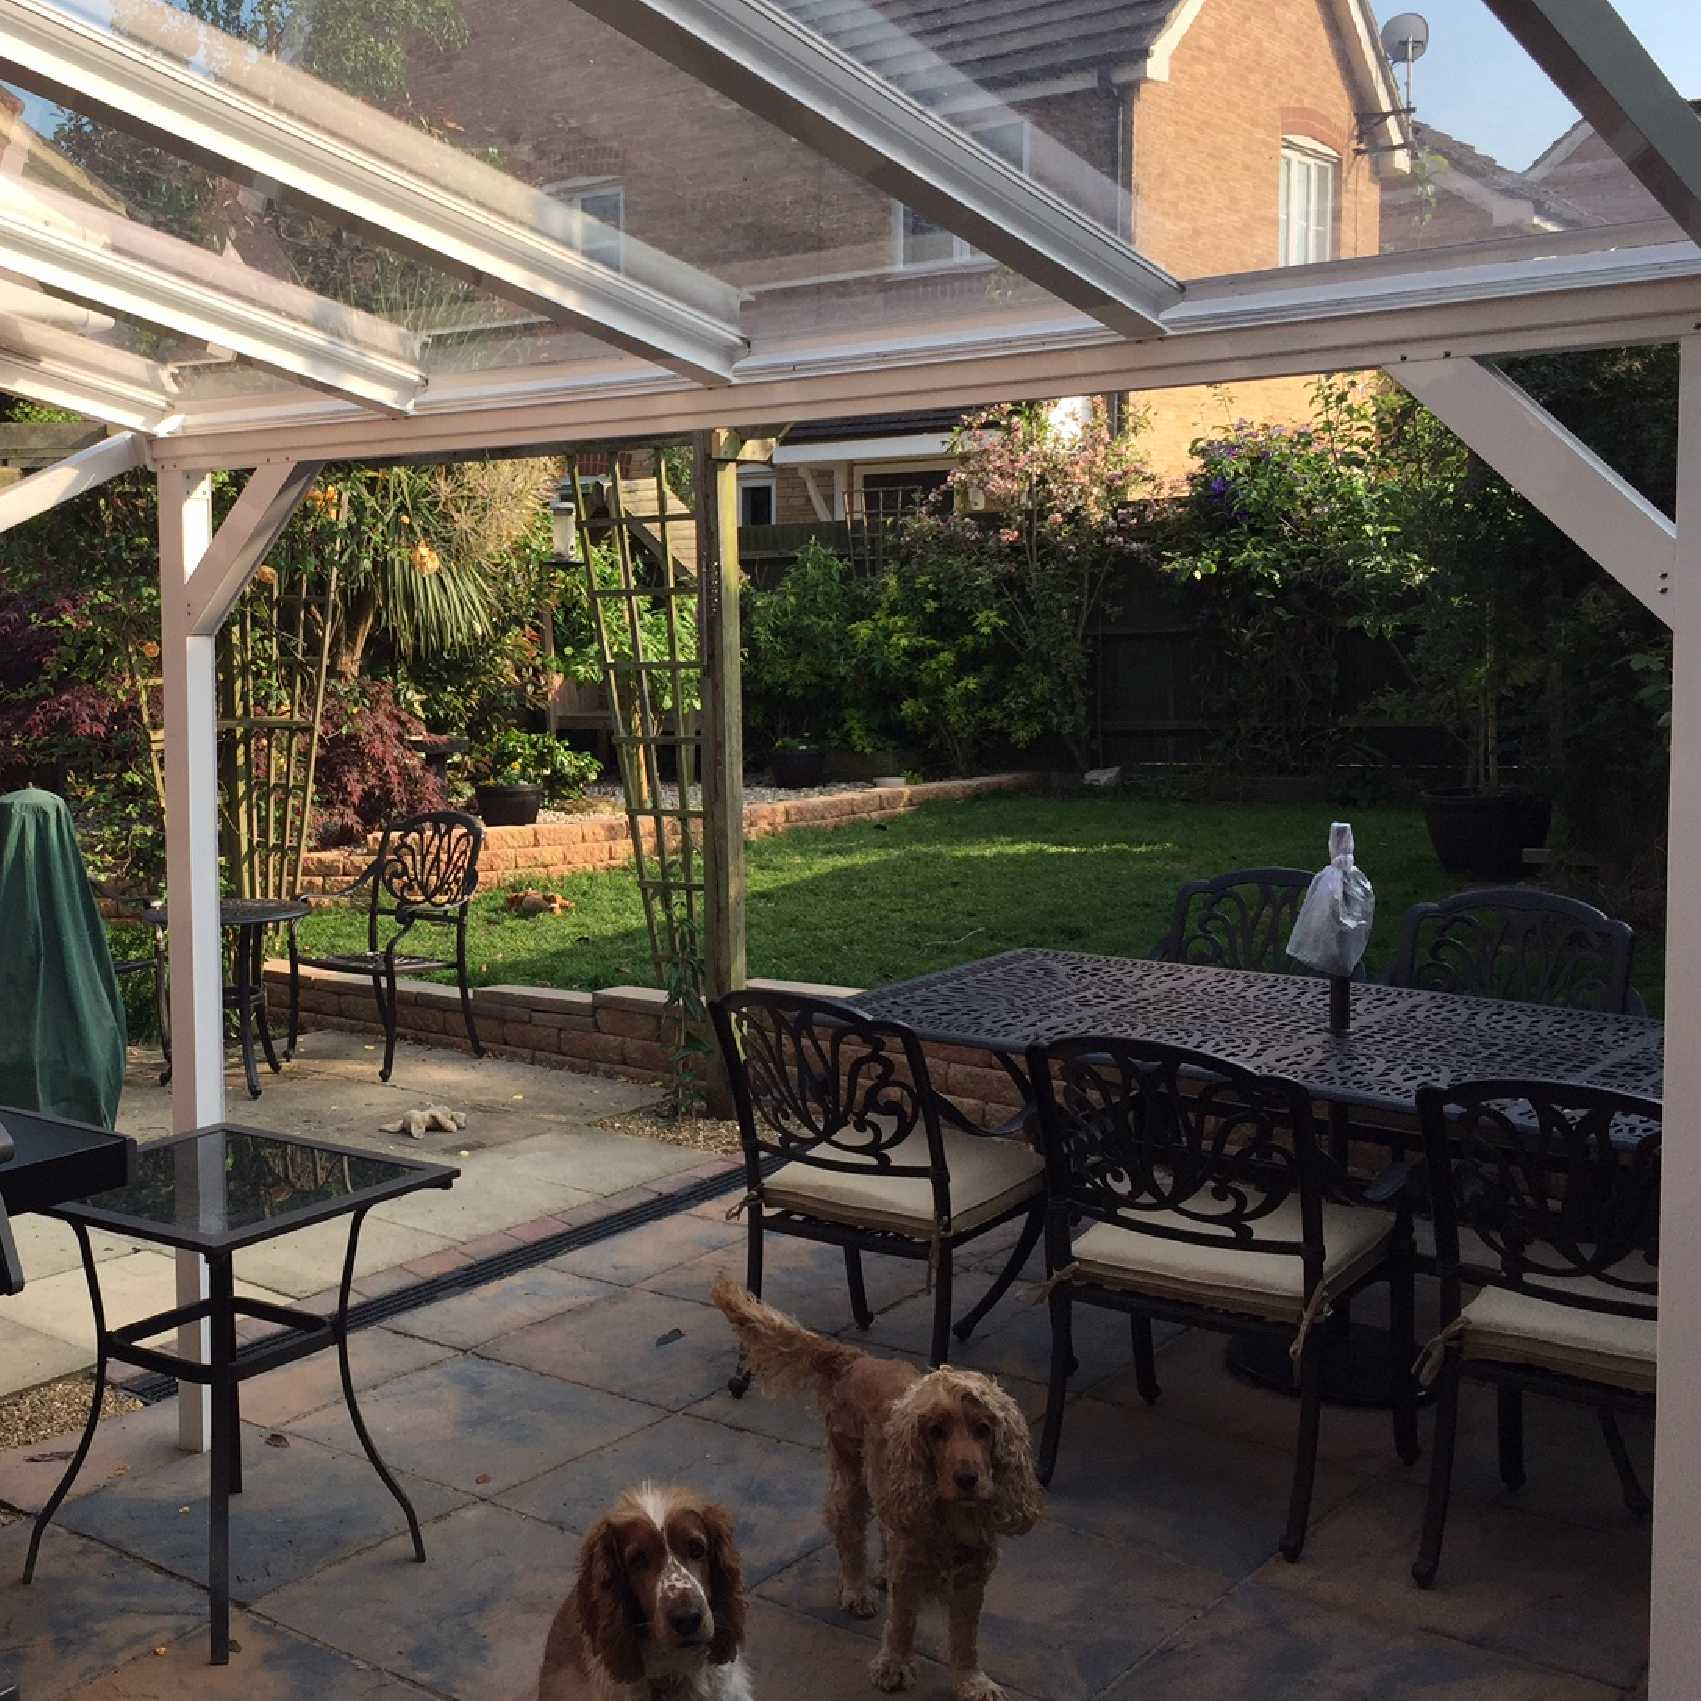 Affordable Omega Smart Lean-To Canopy with 6mm Glass Clear Plate Polycarbonate Glazing - 6.3m (W) x 2.0m (P), (4) Supporting Posts